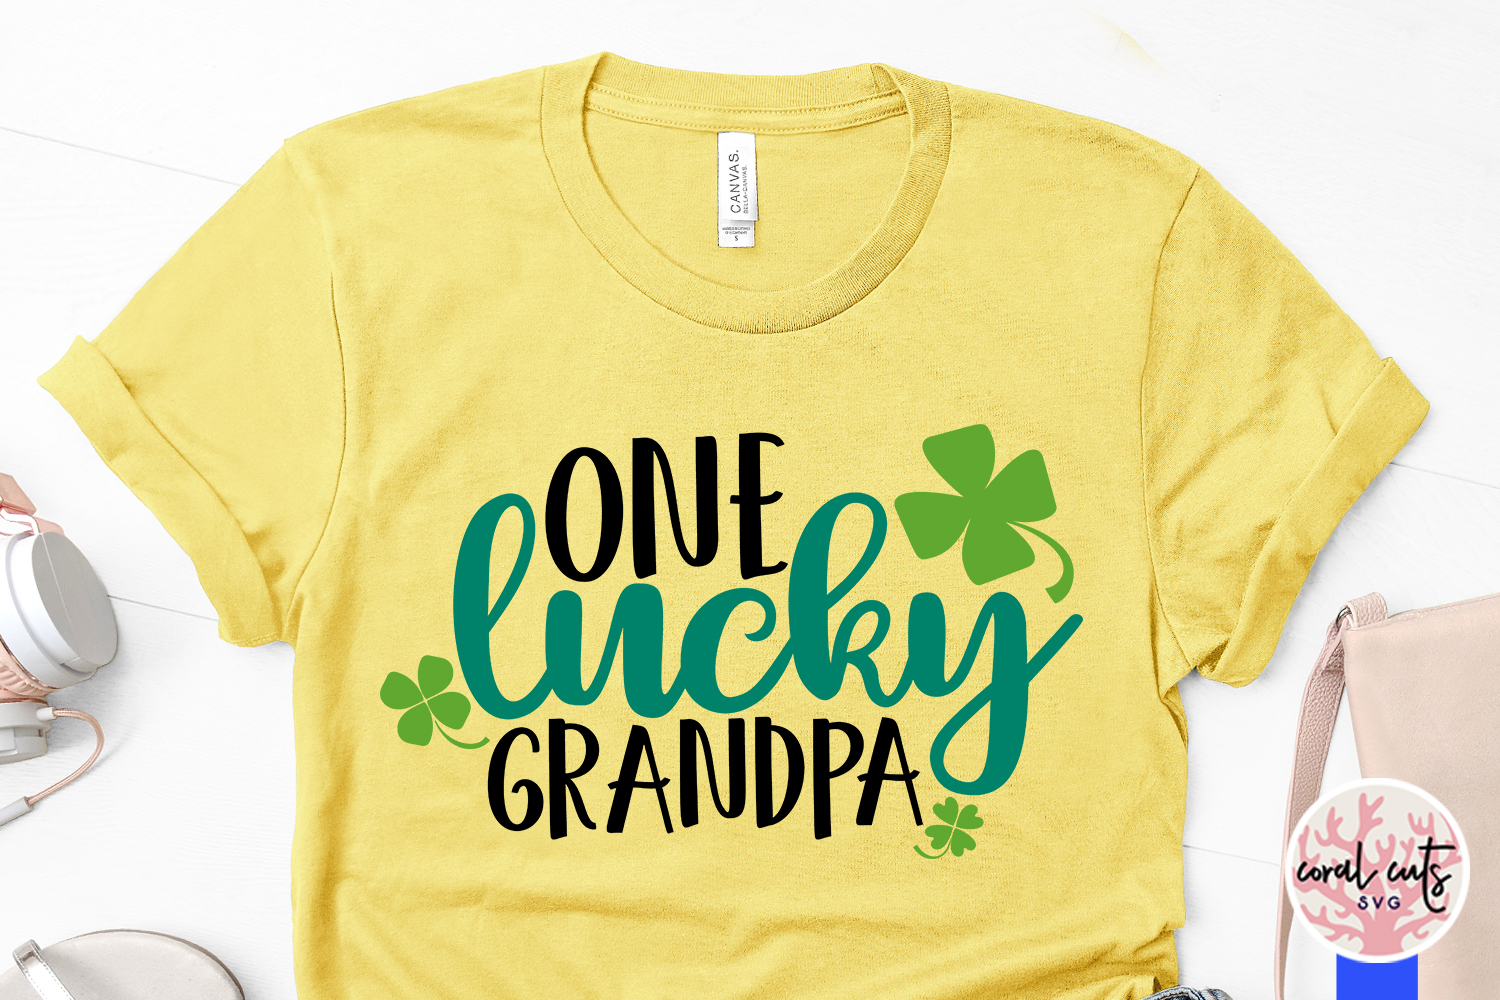 One lucky grandpa - St. Patrick's Day SVG EPS DXF PNG example image 3